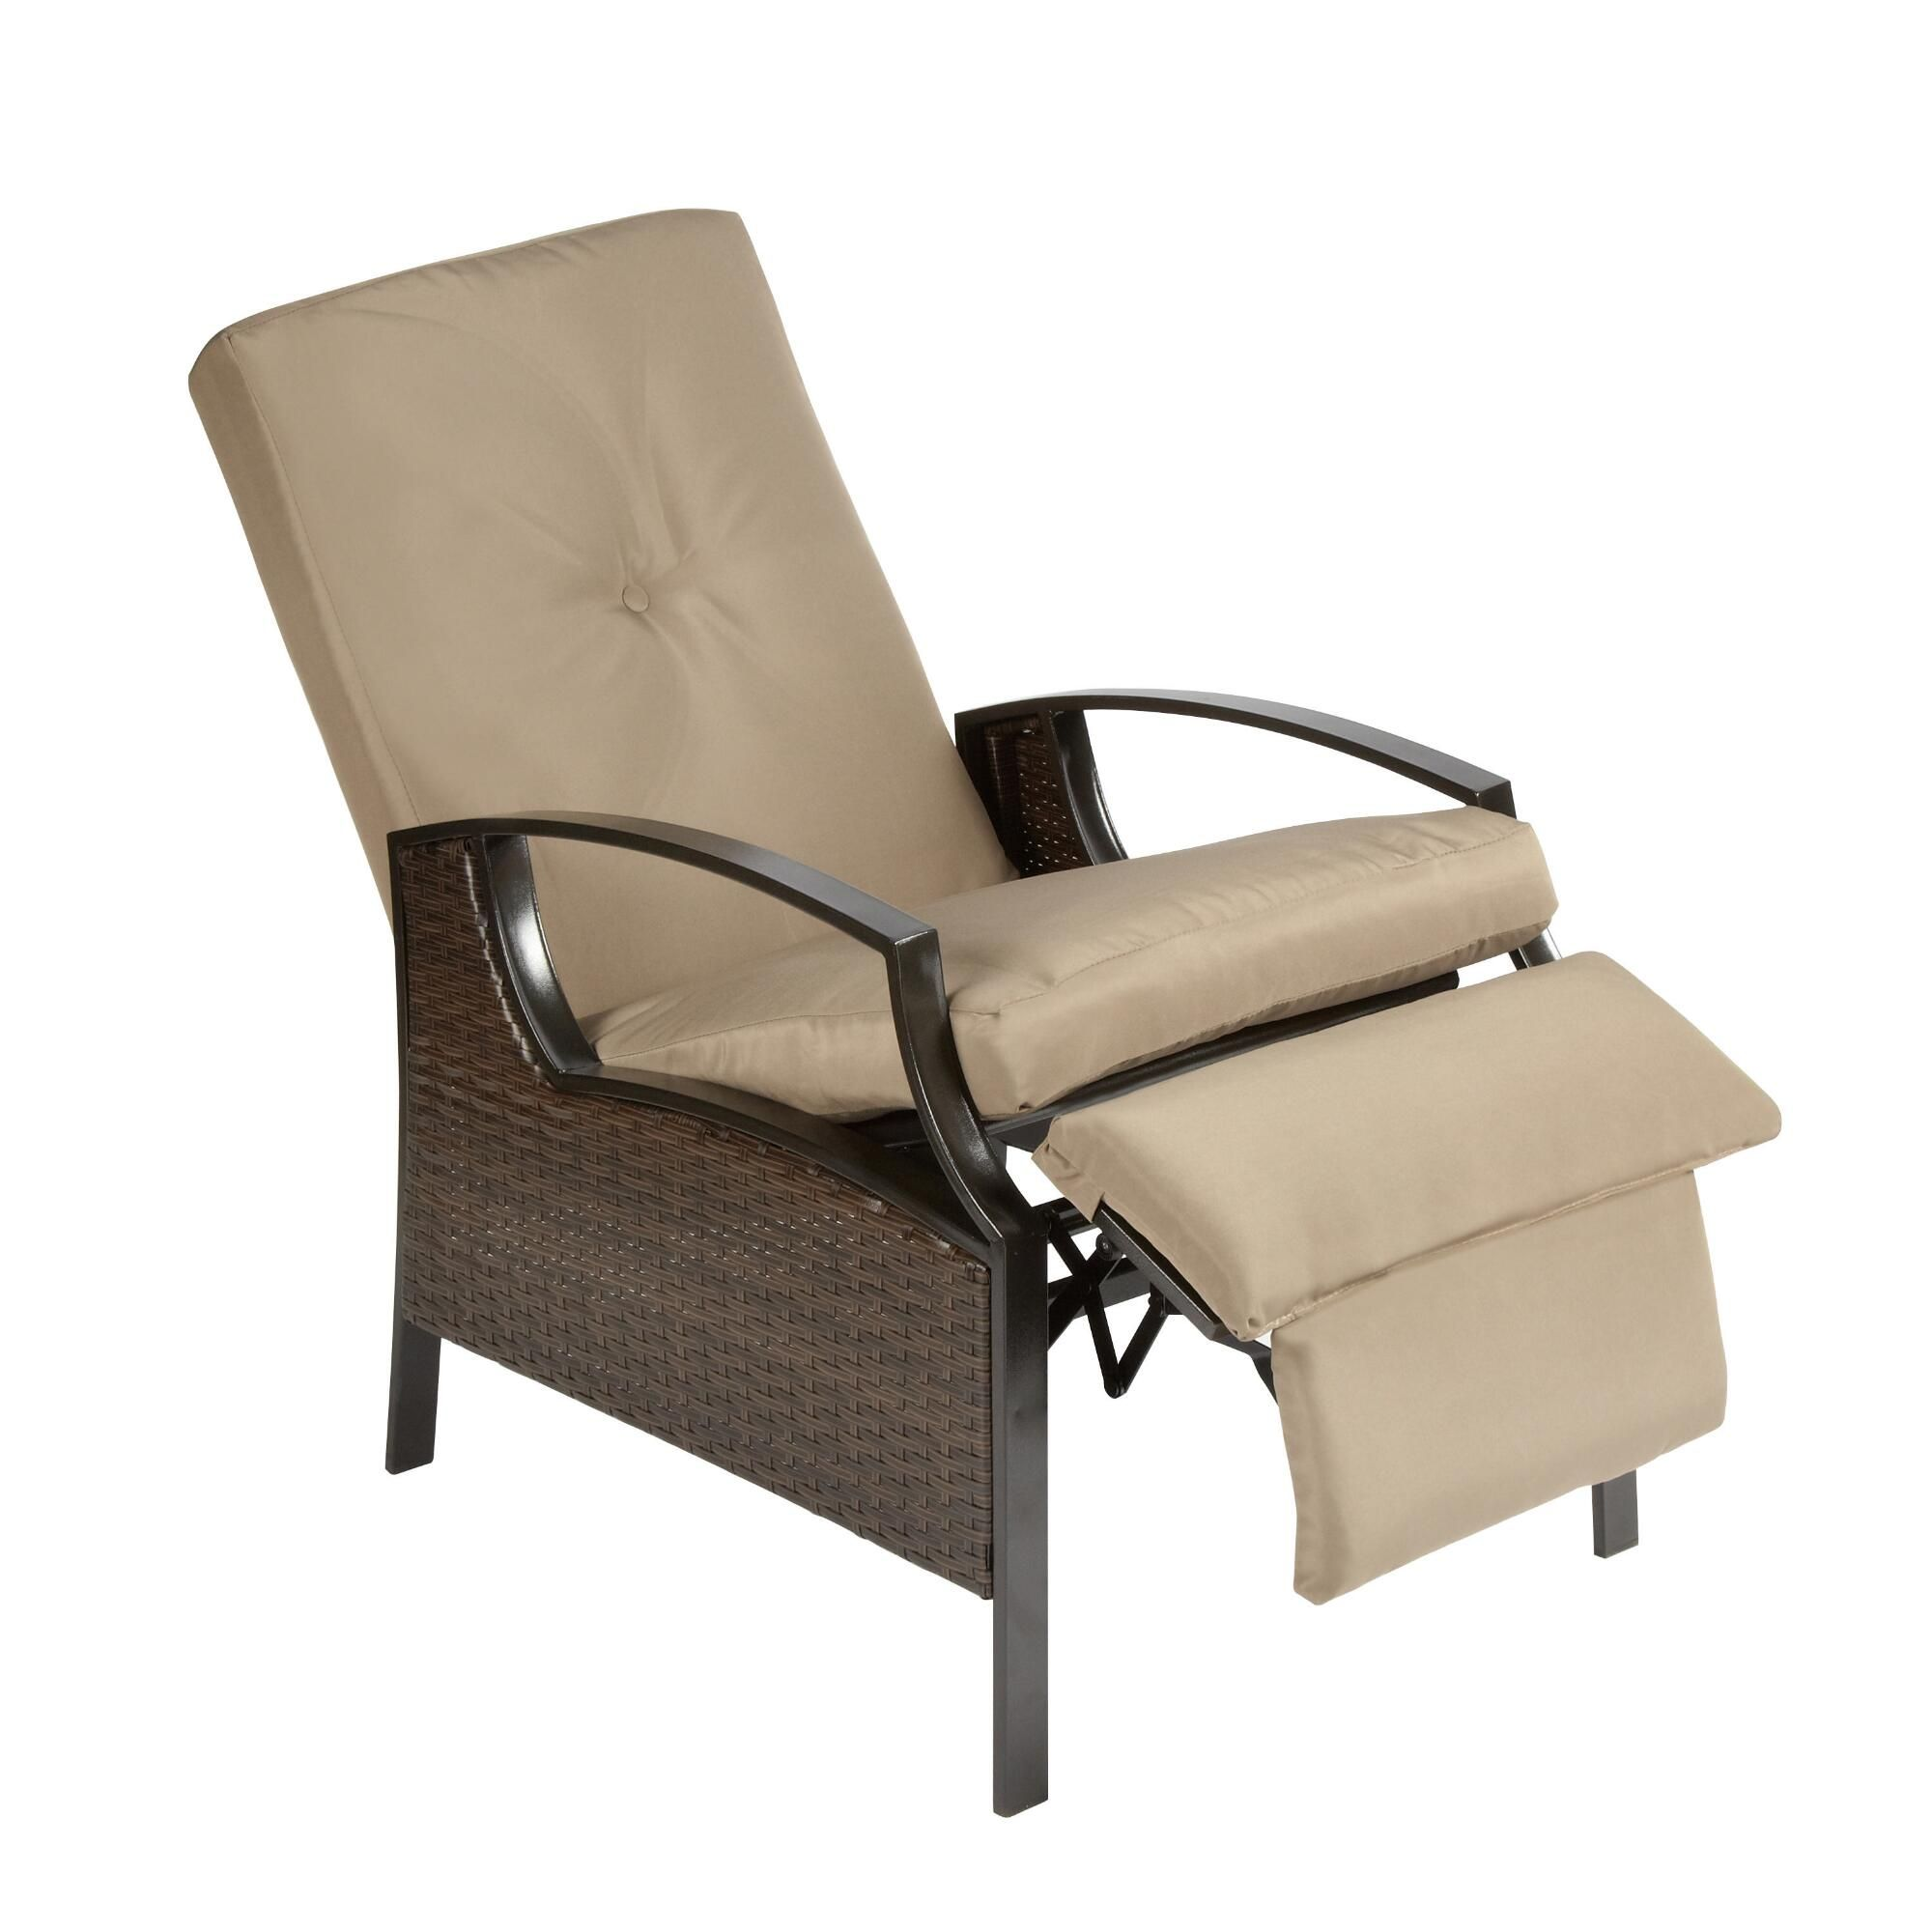 Delicieux 3 Position Indoor/Outdoor Recliner Chair | Christmas Tree Shops AndThat!